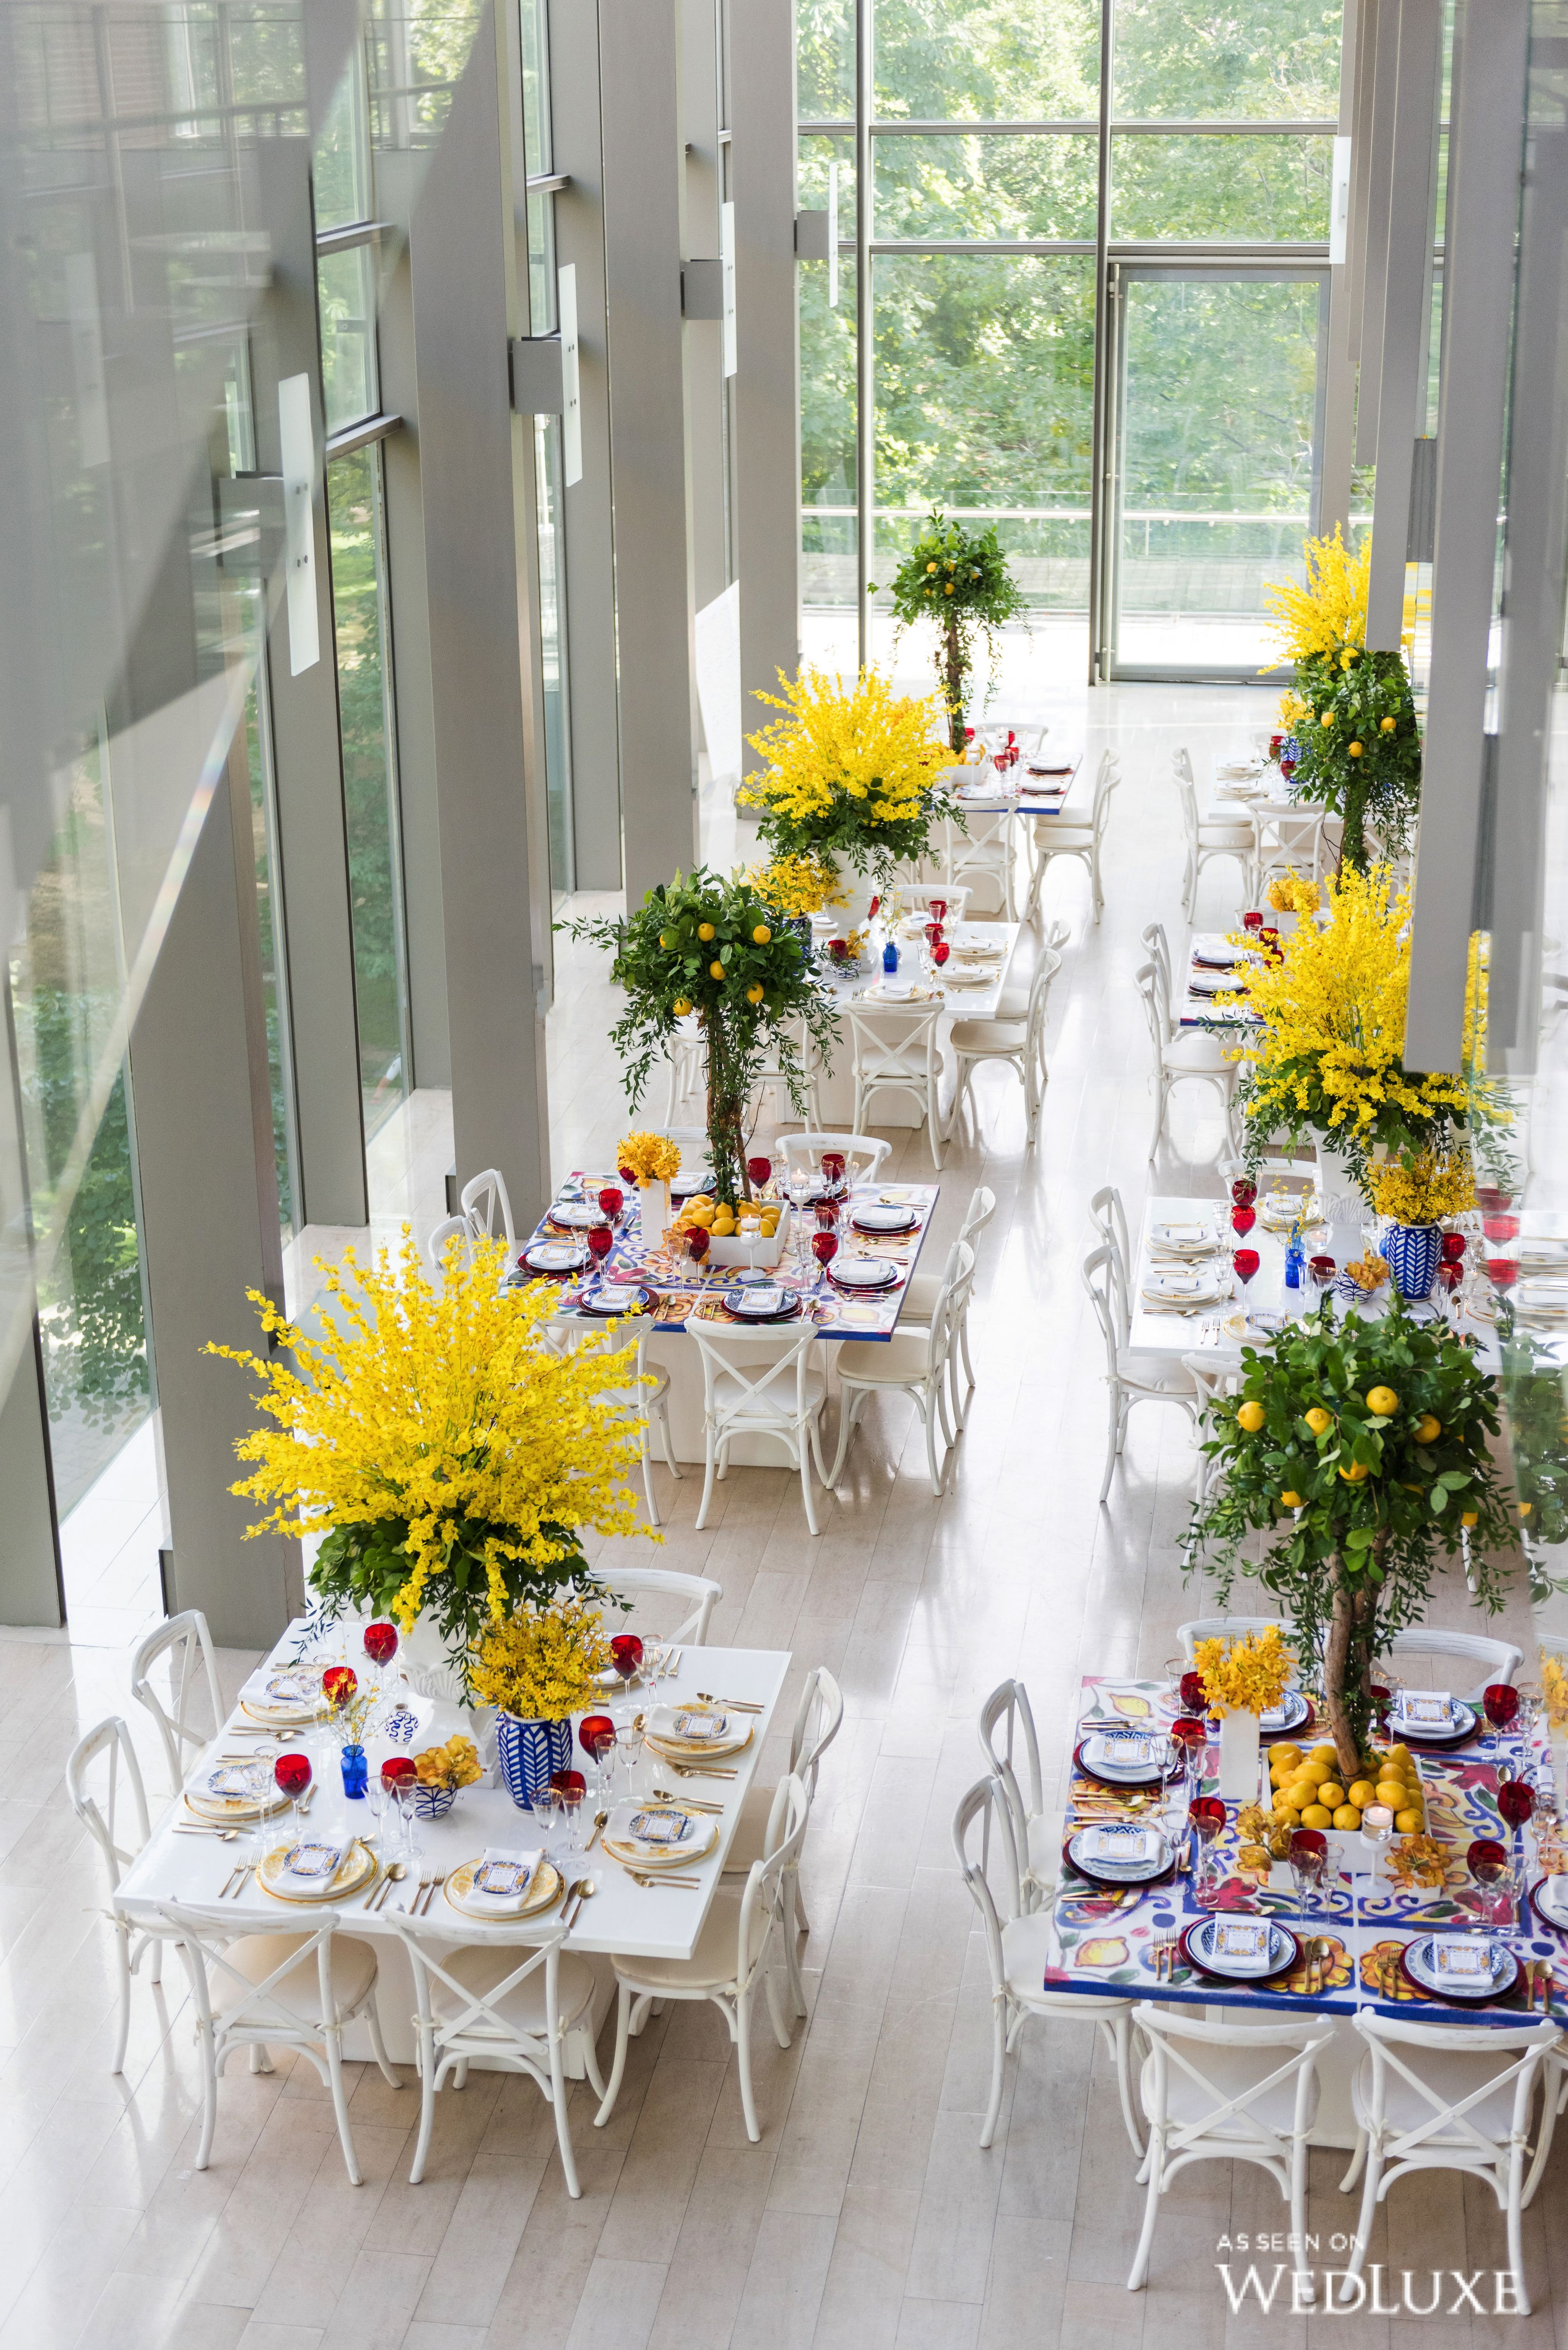 50++ Wedding dinner music country ideas in 2021